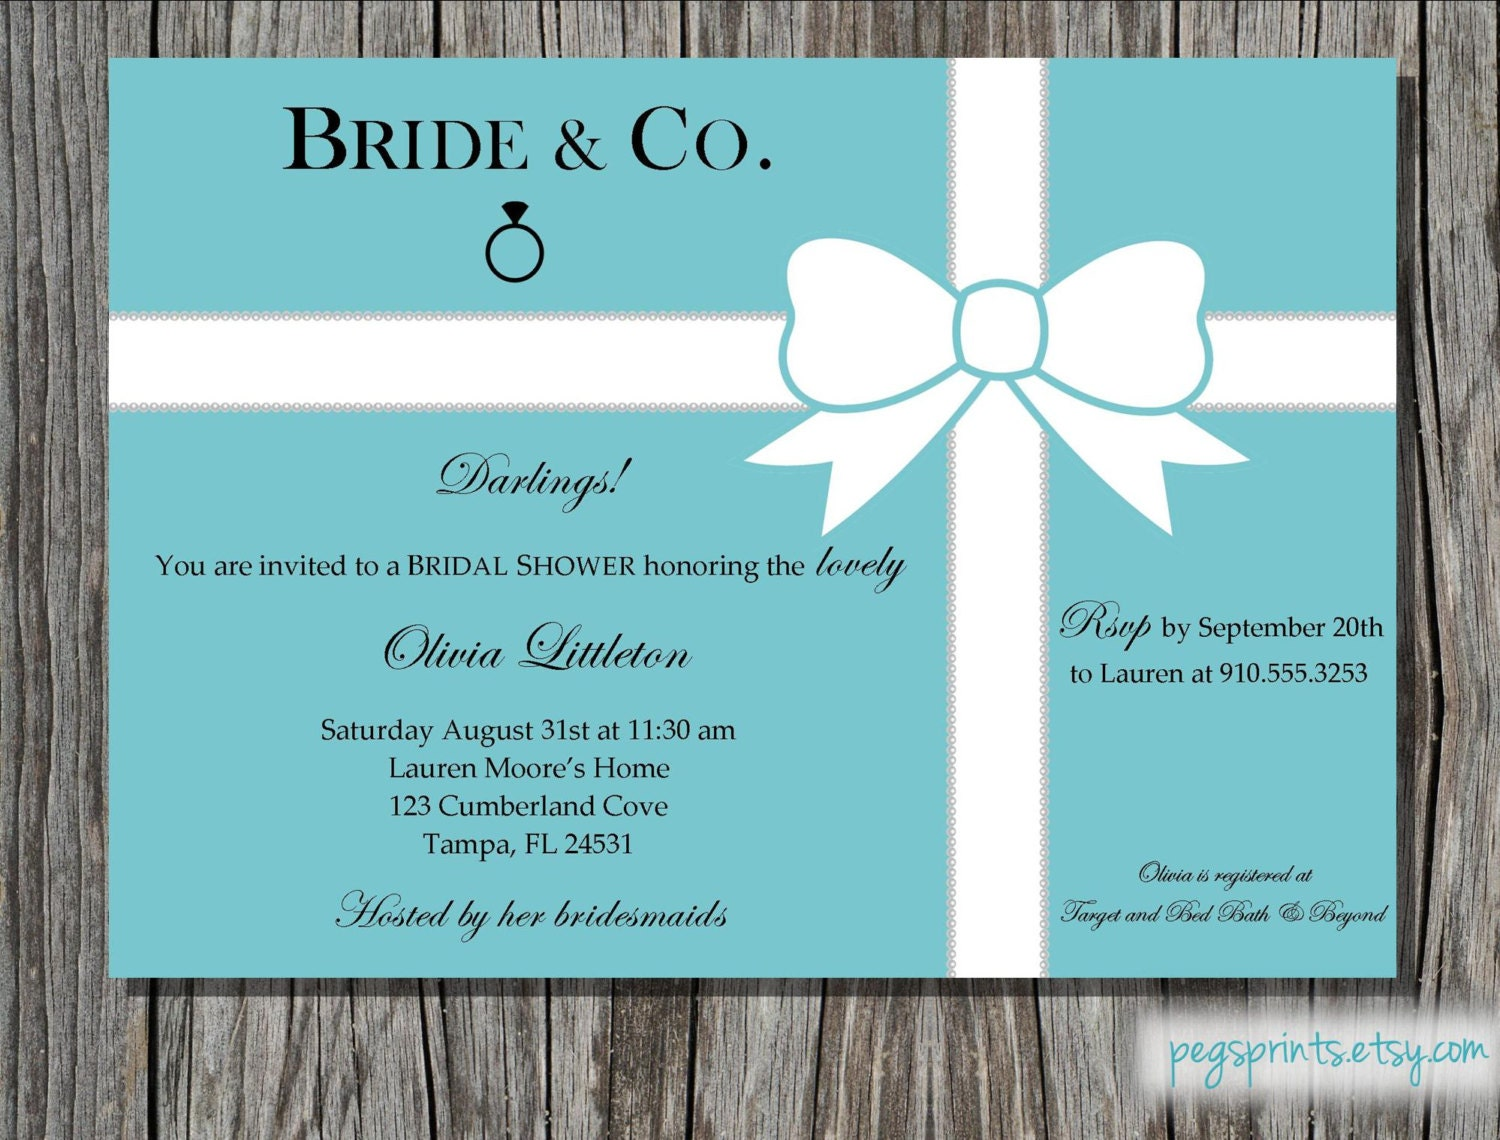 Bridal Shower Invitations Bridal Shower Invitations Breakfast At